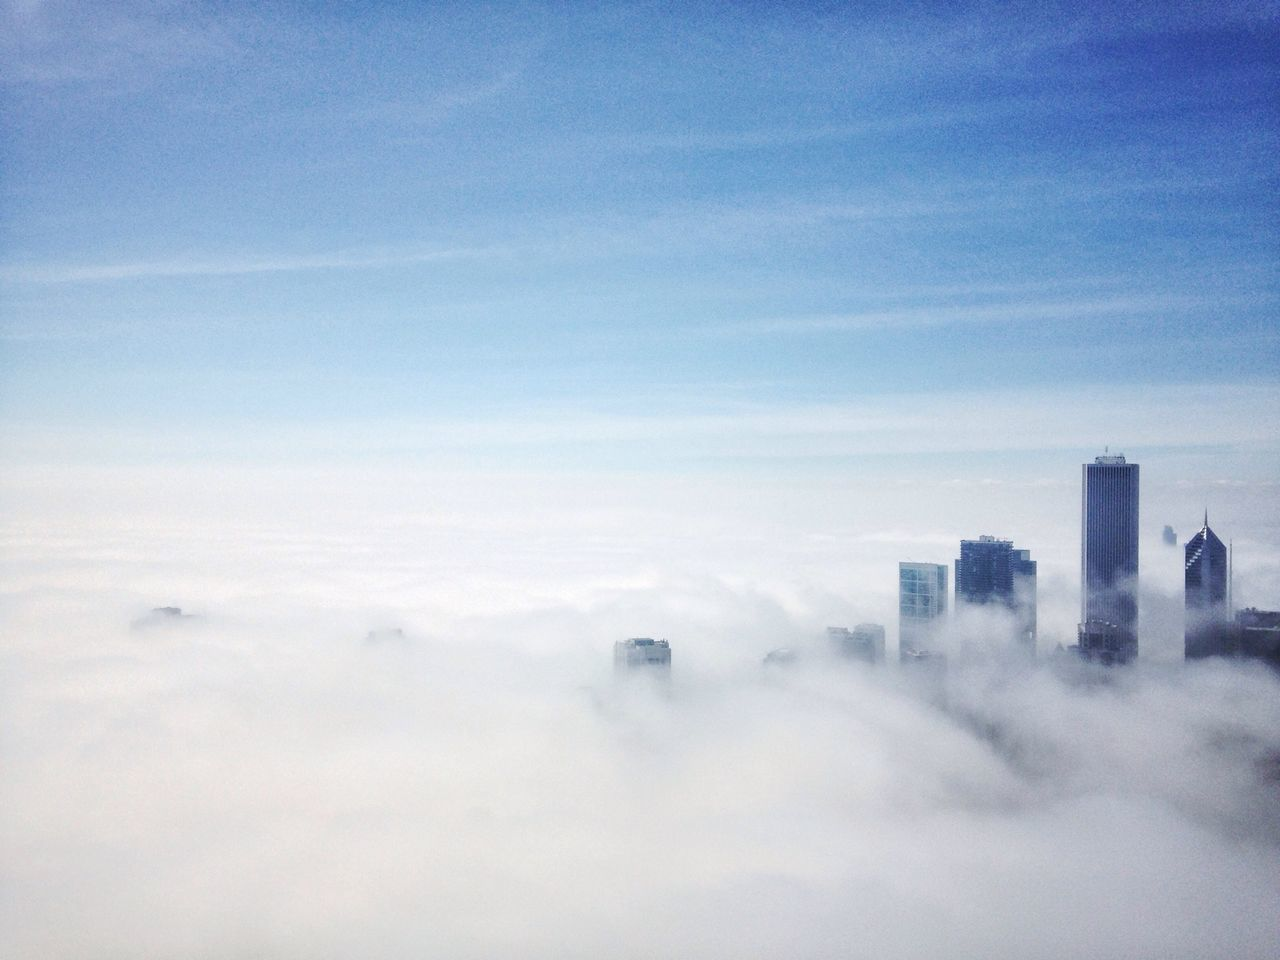 AMPt_community Great Views Skyline Fog How's The Weather Today? EyeEm Bestsellers Market Bestsellers August 2016 Bestsellers